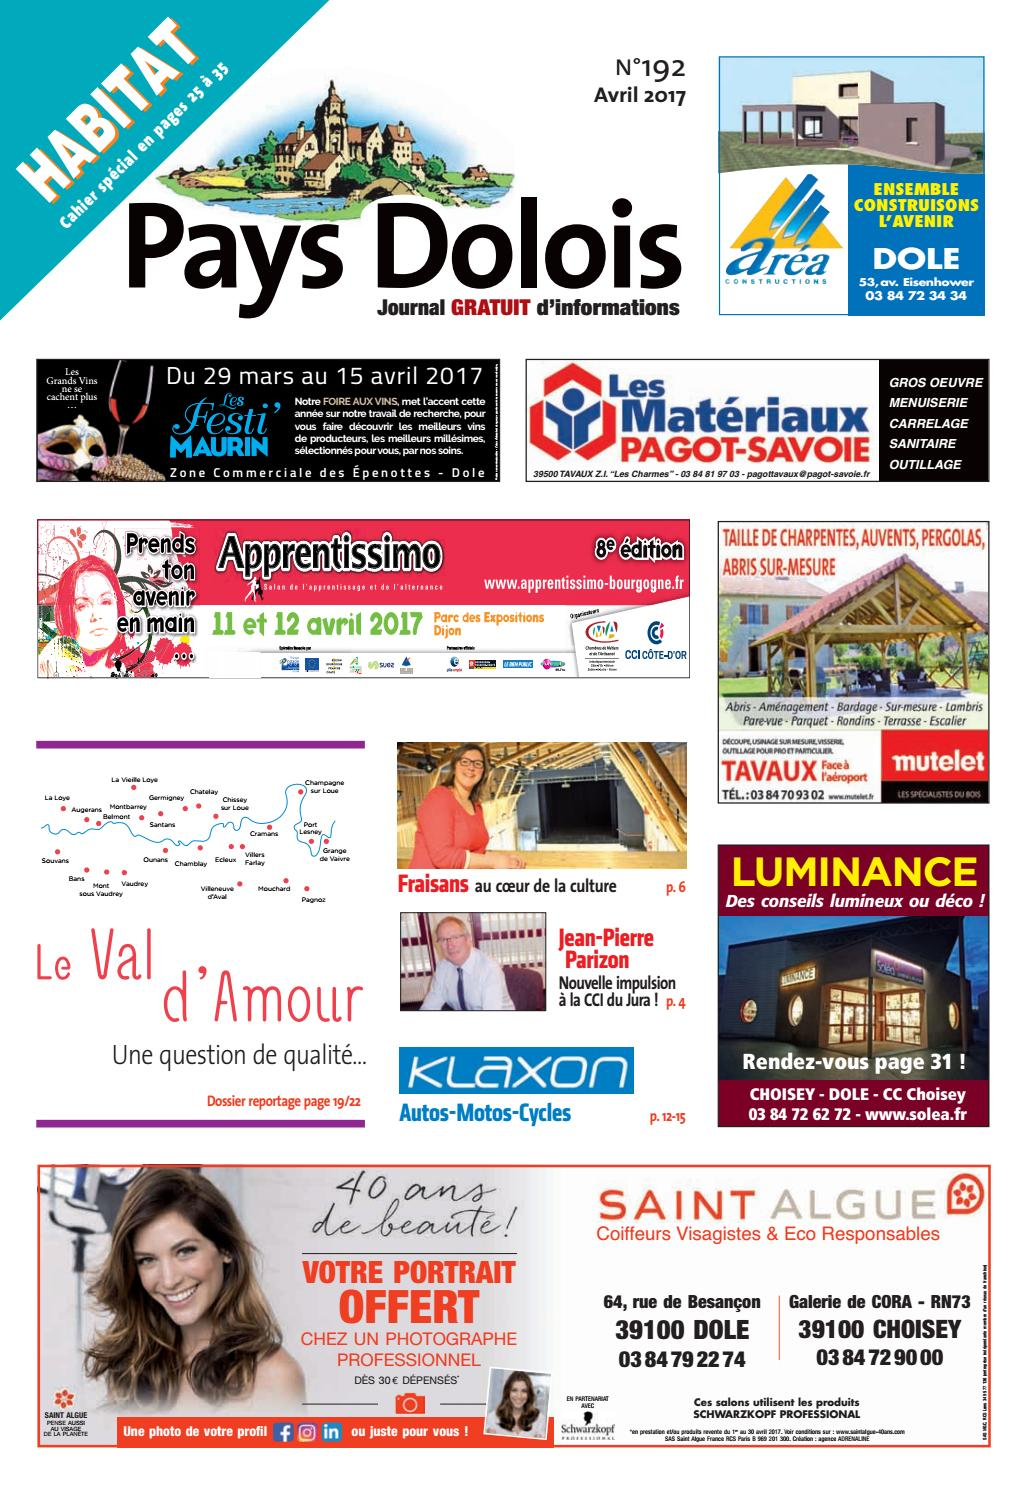 Pays Dolois 192 by PAOH - issuu a72af08baff